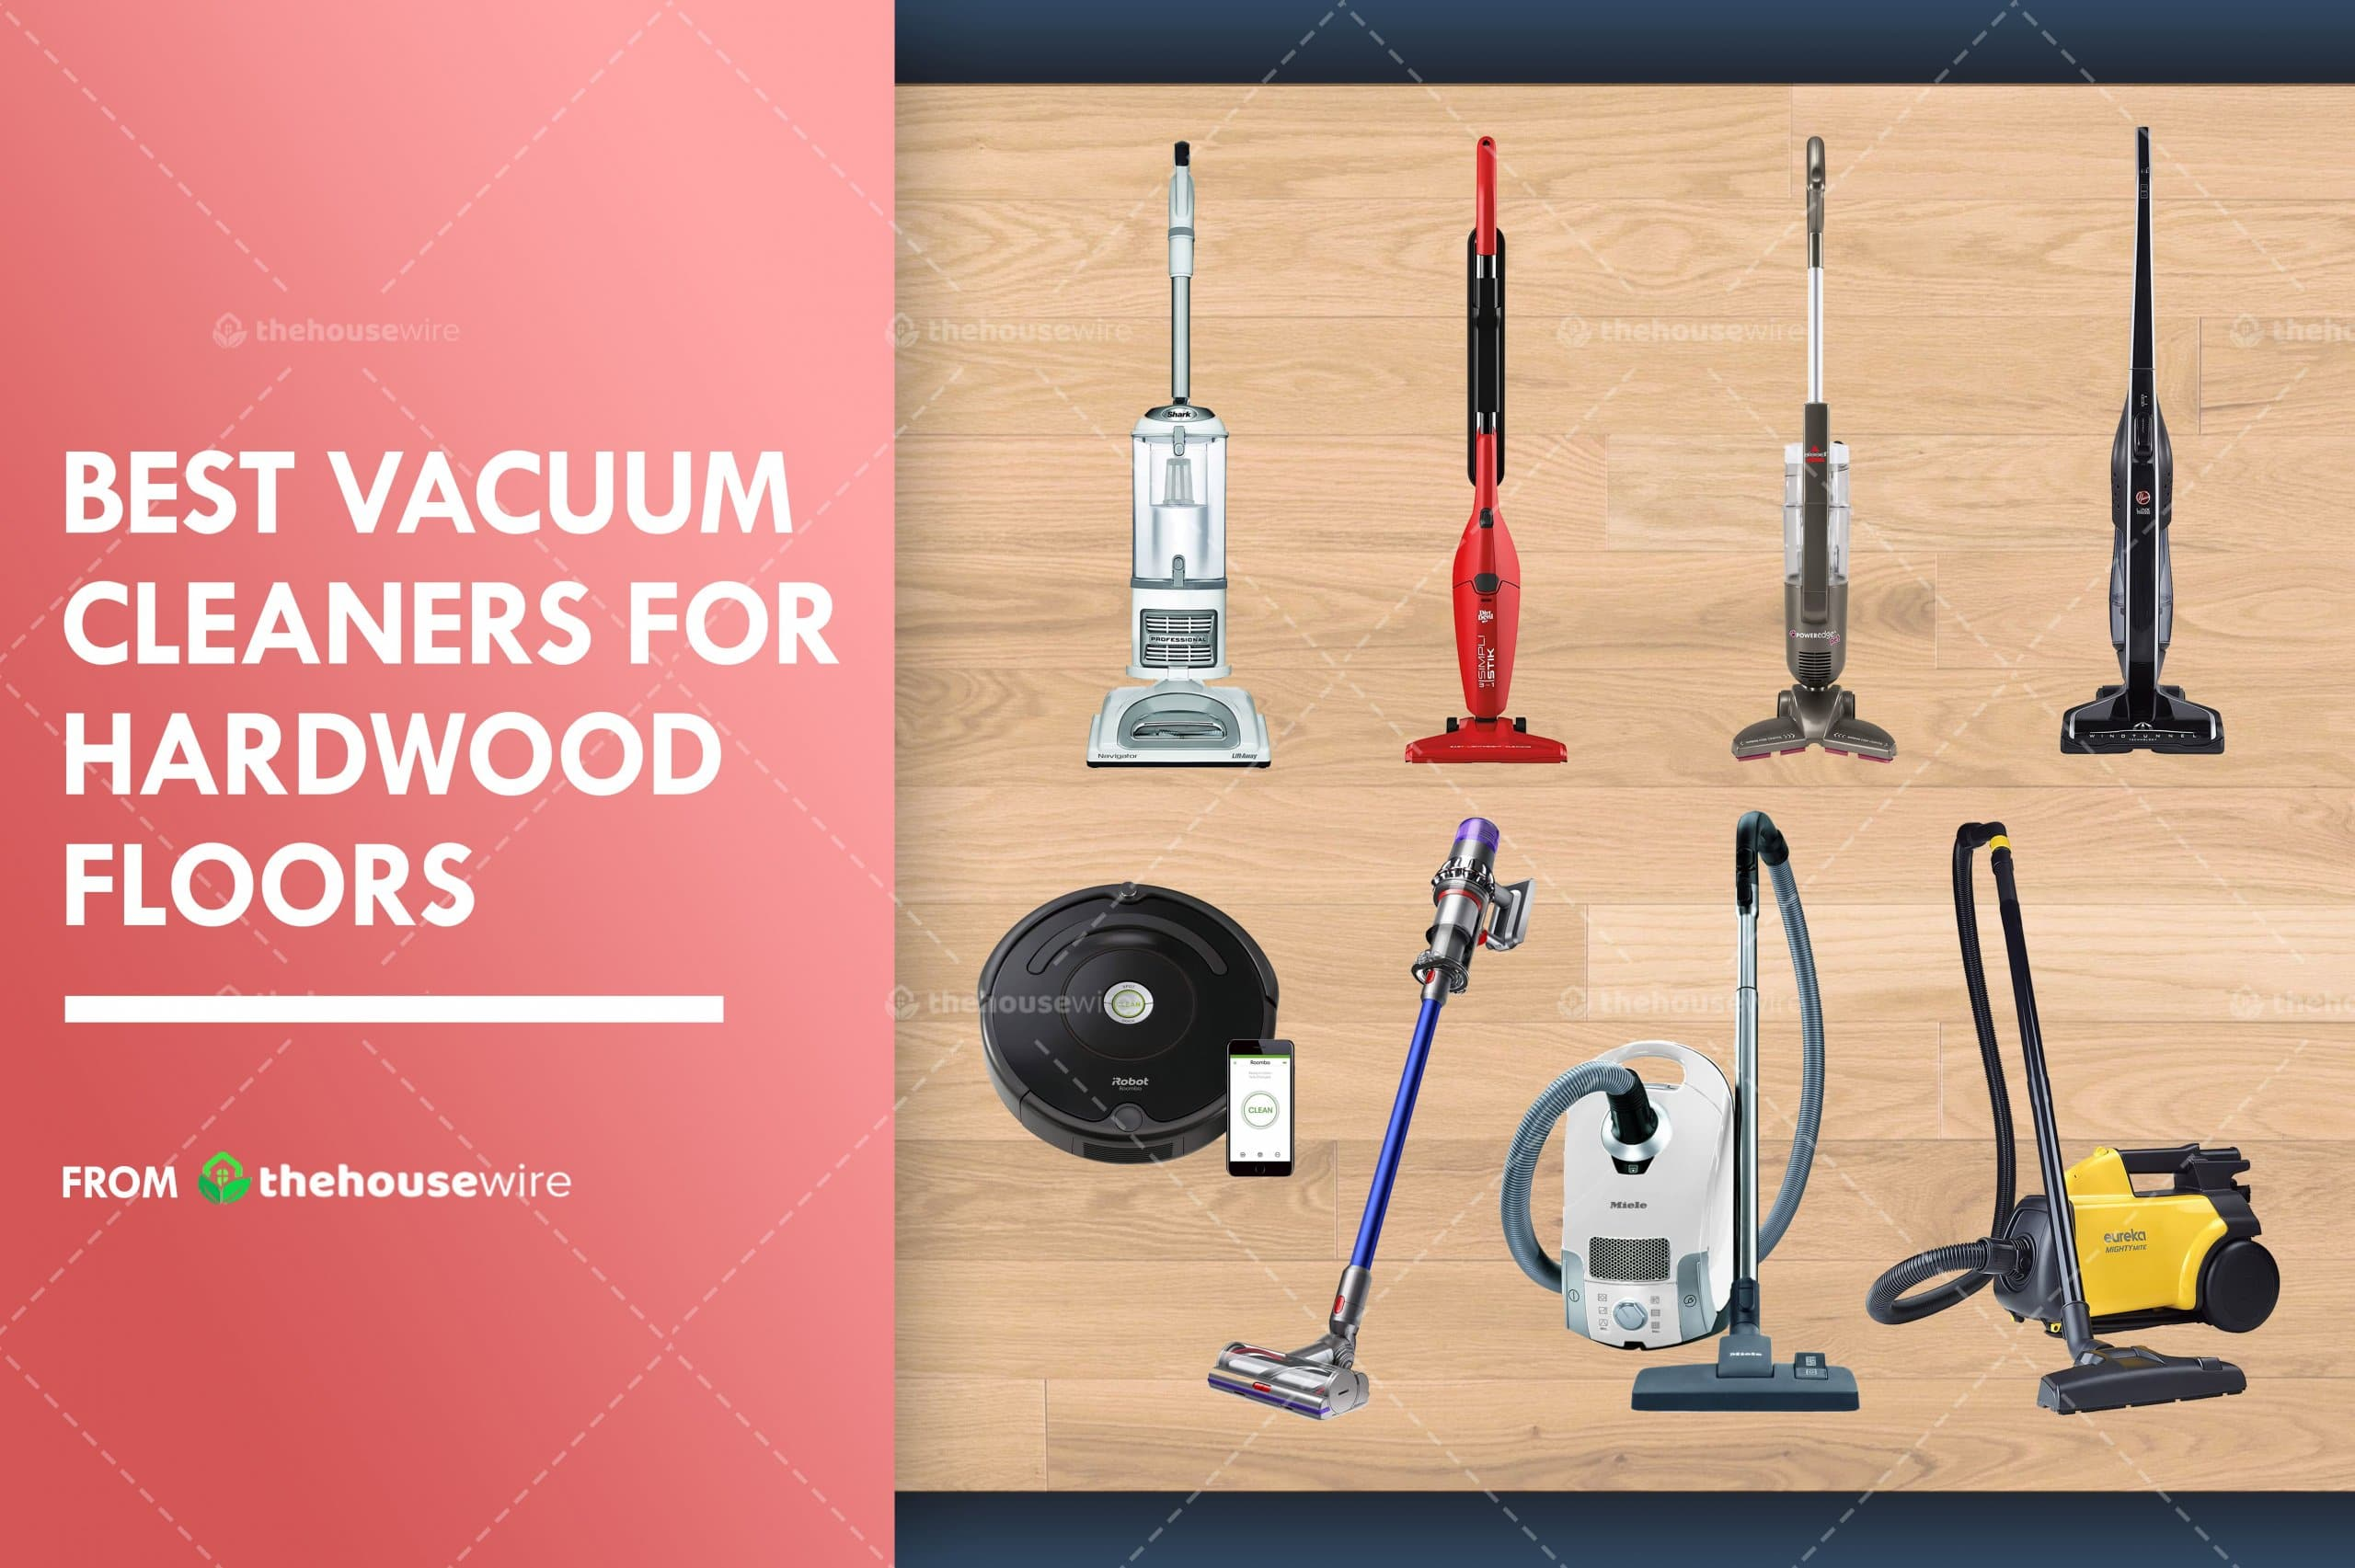 The 8 Best Vacuum Cleaners For Hardwood Floors Of 2020